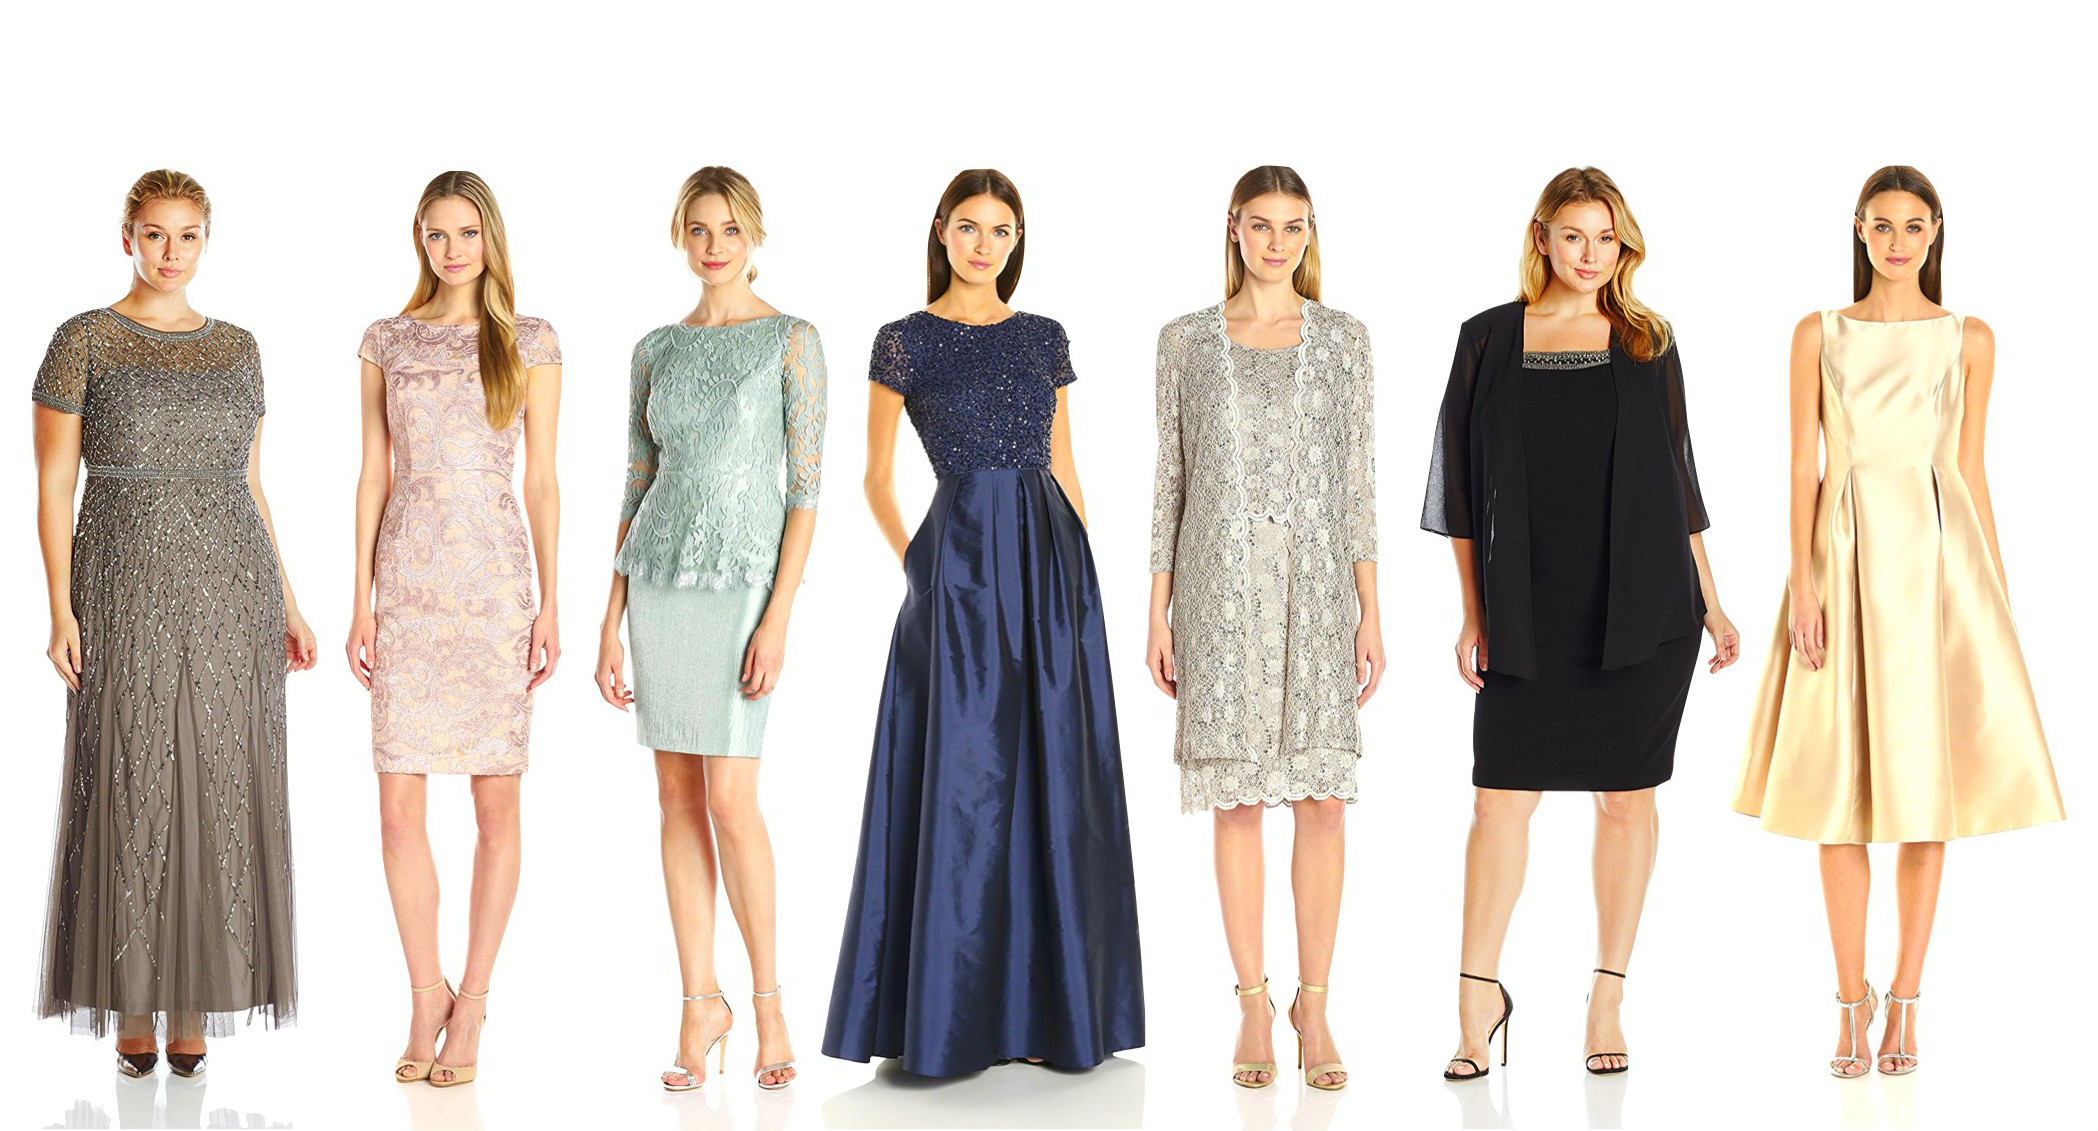 mother of the bride dresses, mother of the bride outfits, mother of the  bride